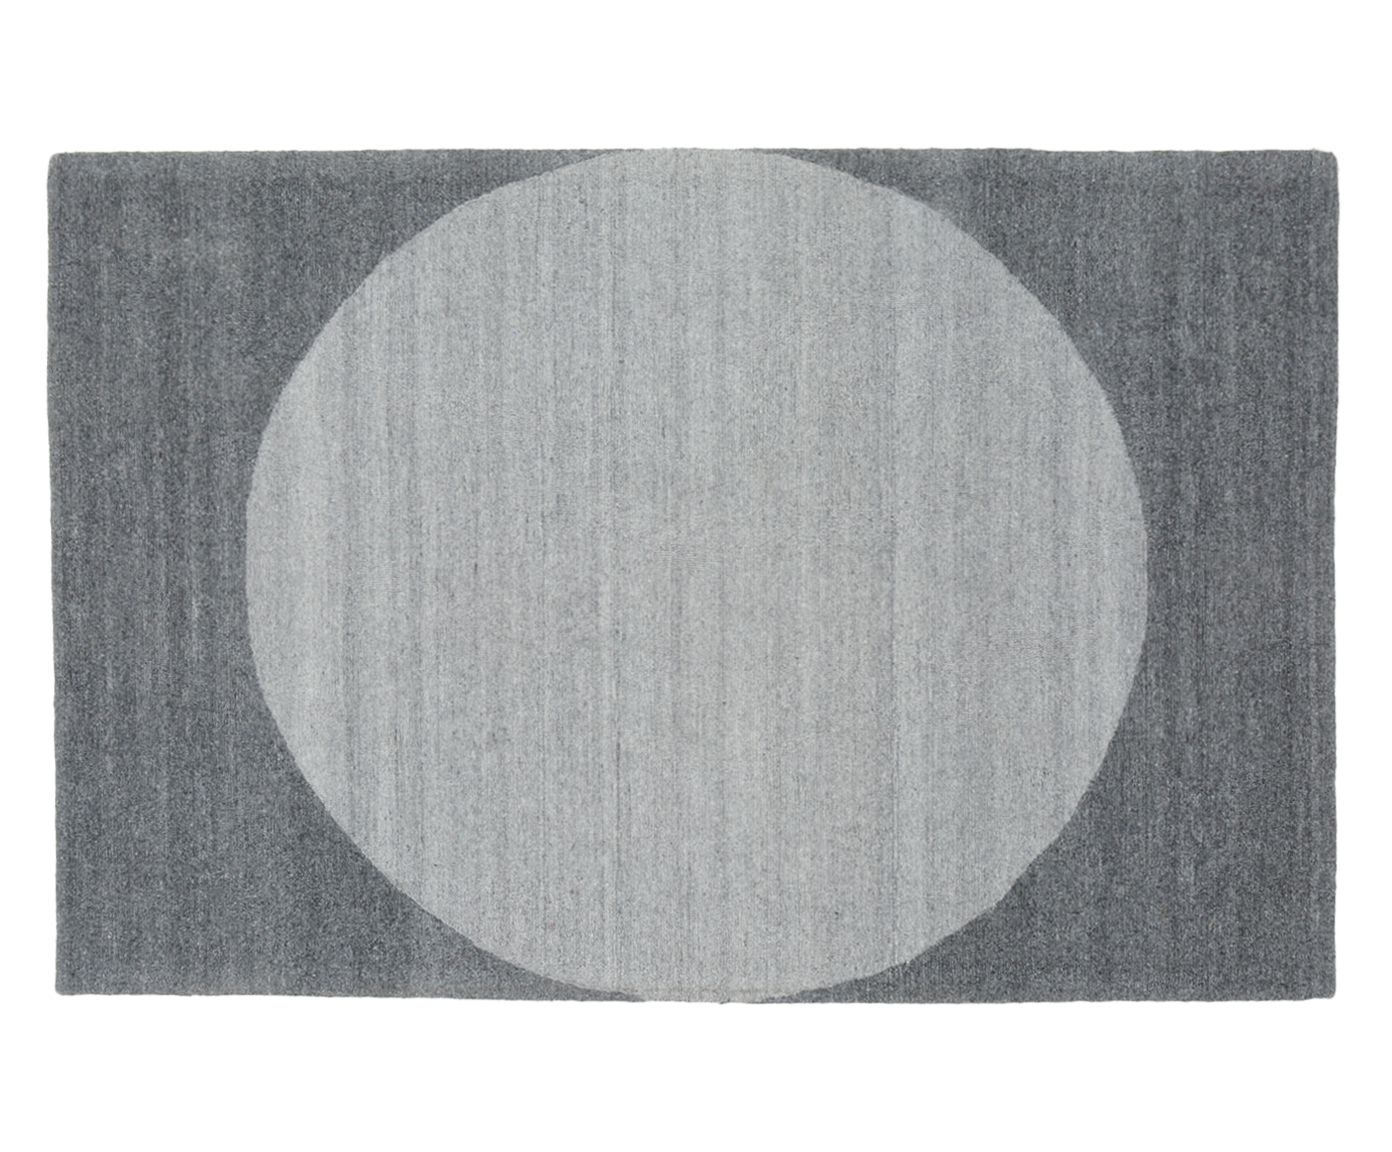 Tapete Artesanal Indiano Circle - 152X242cm | Westwing.com.br